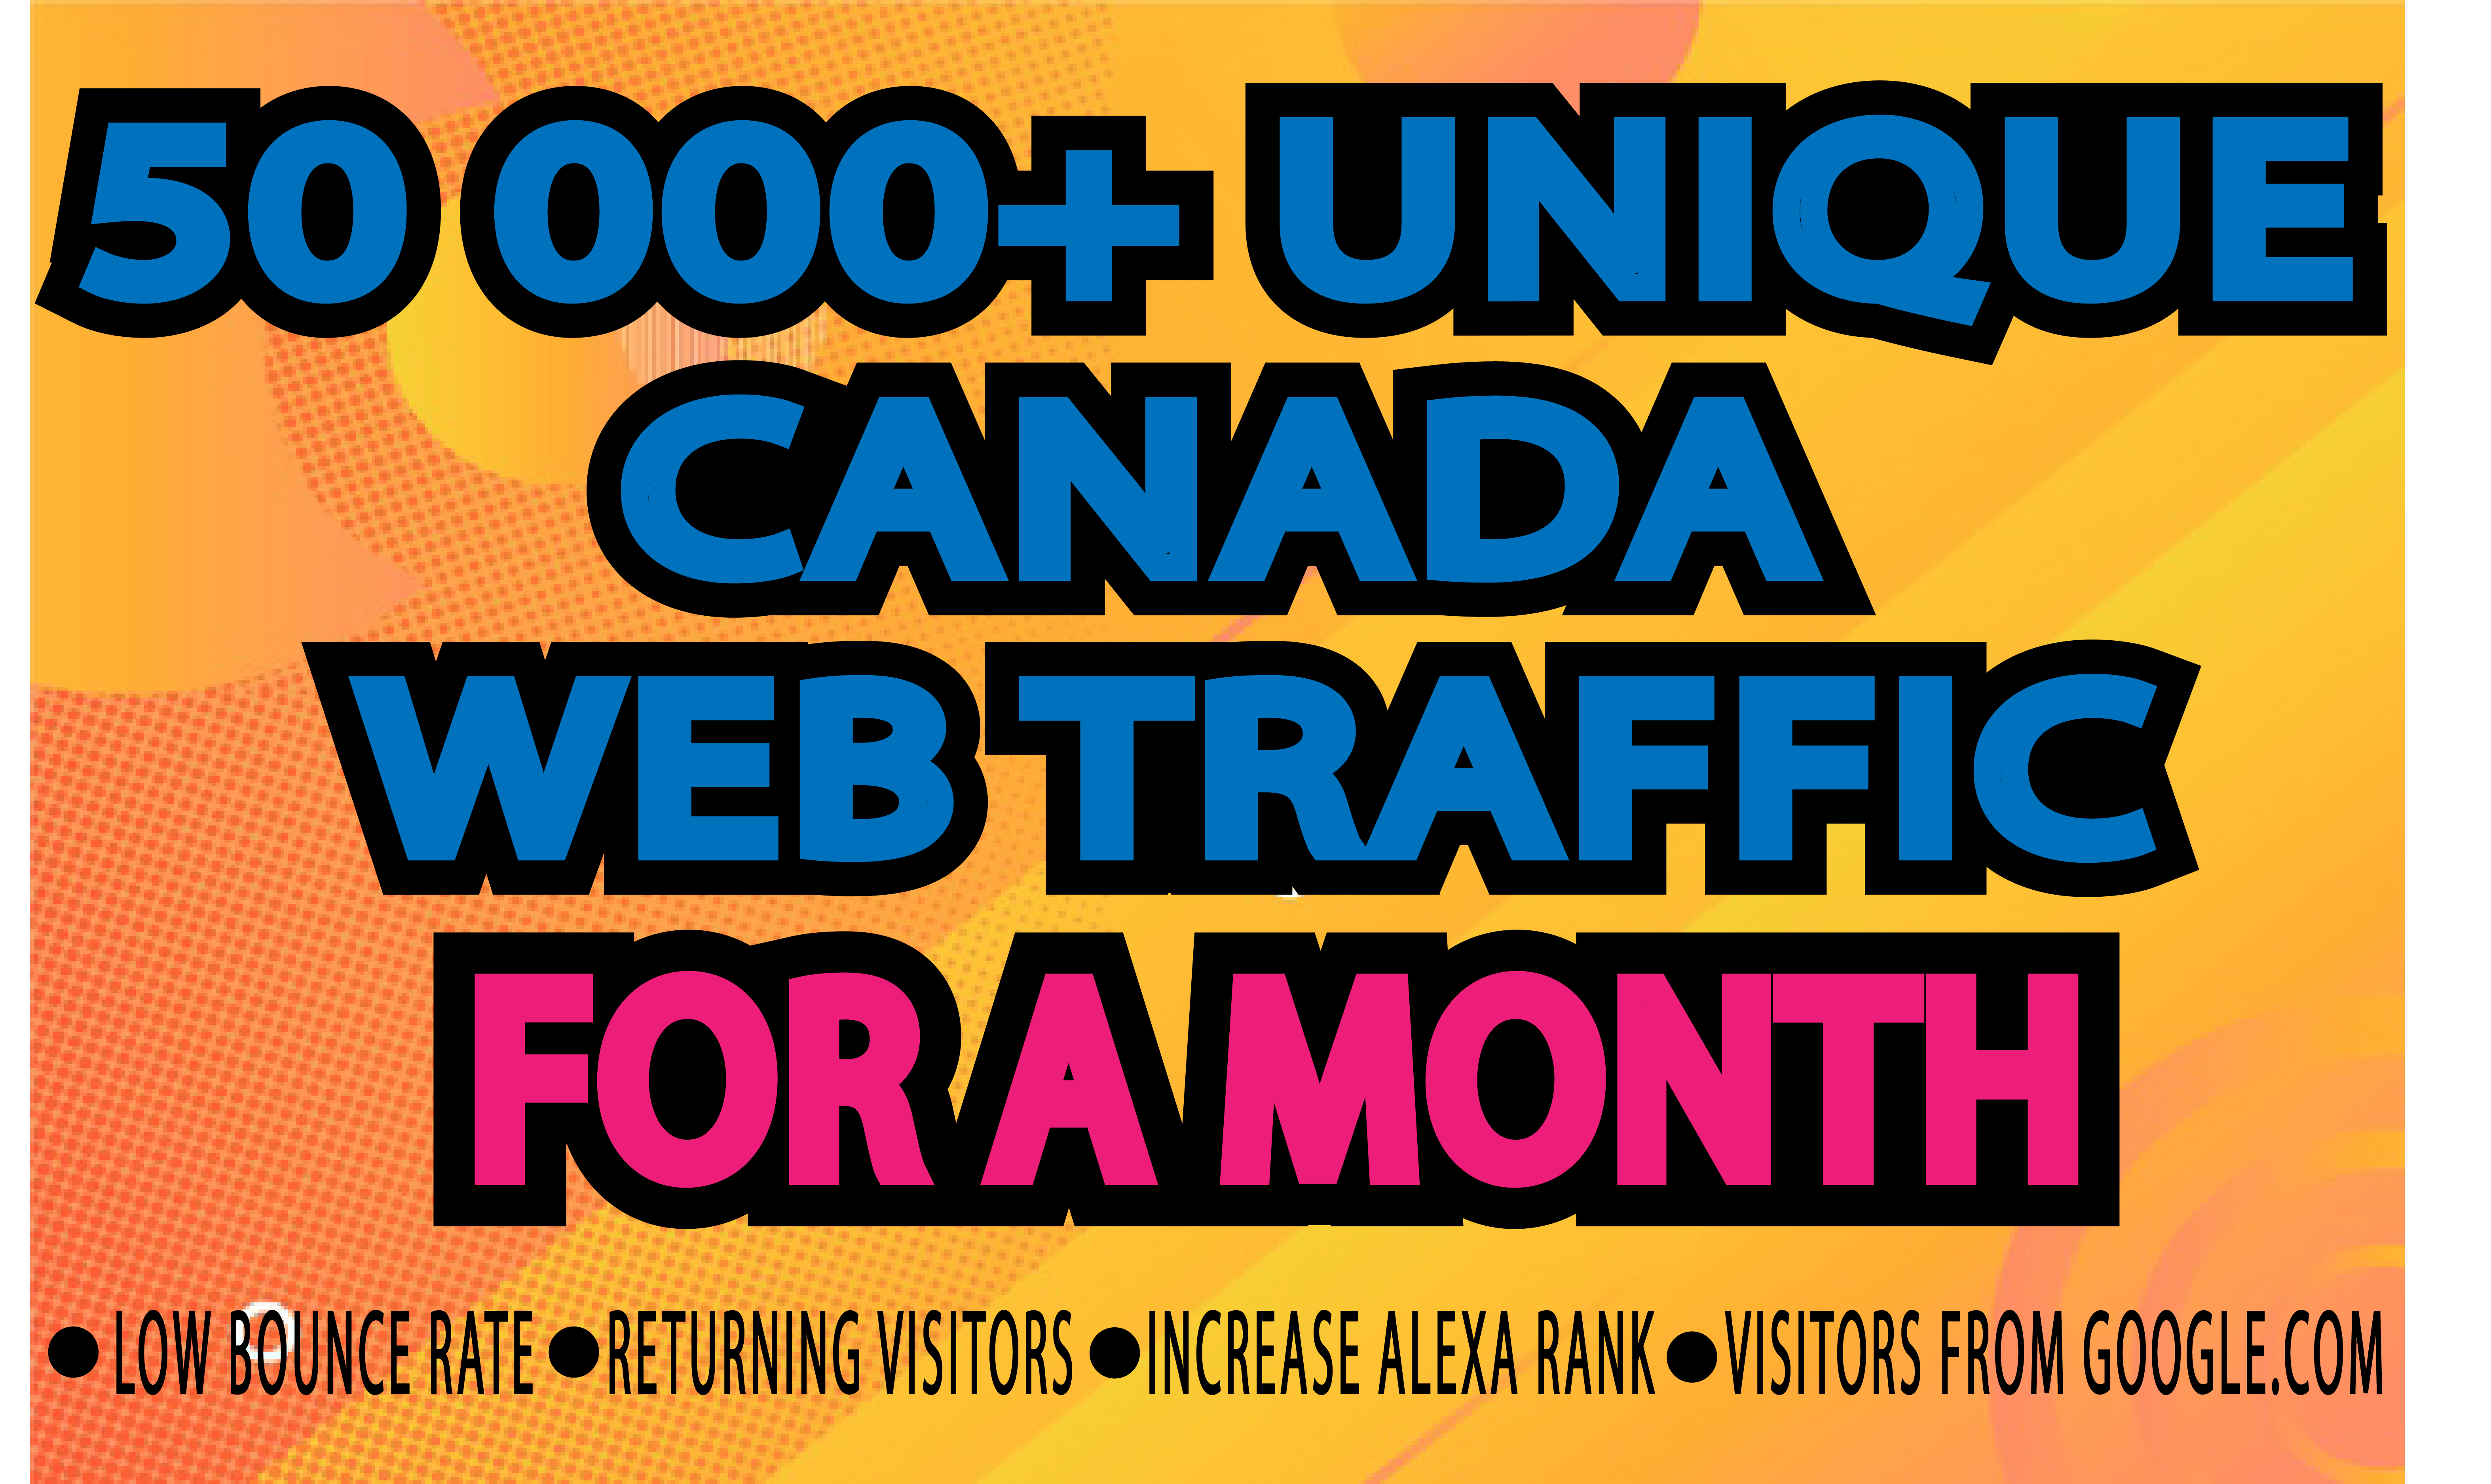 Drive Canada Targeted Web Traffic For a Month From Google